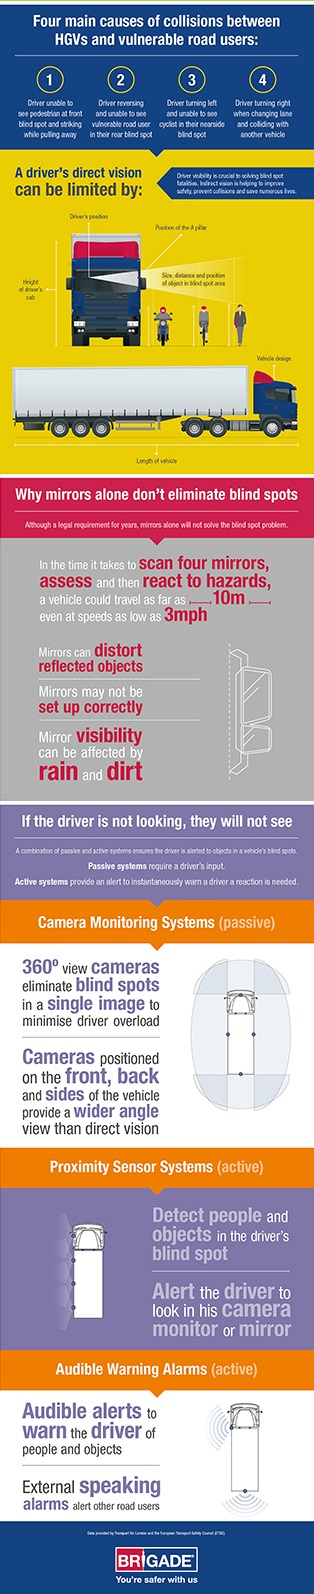 Blind spot collisions infographic by Brigade Electronics cropped for USA Direct and indirect vision: Avoiding accidents caused by blind spots